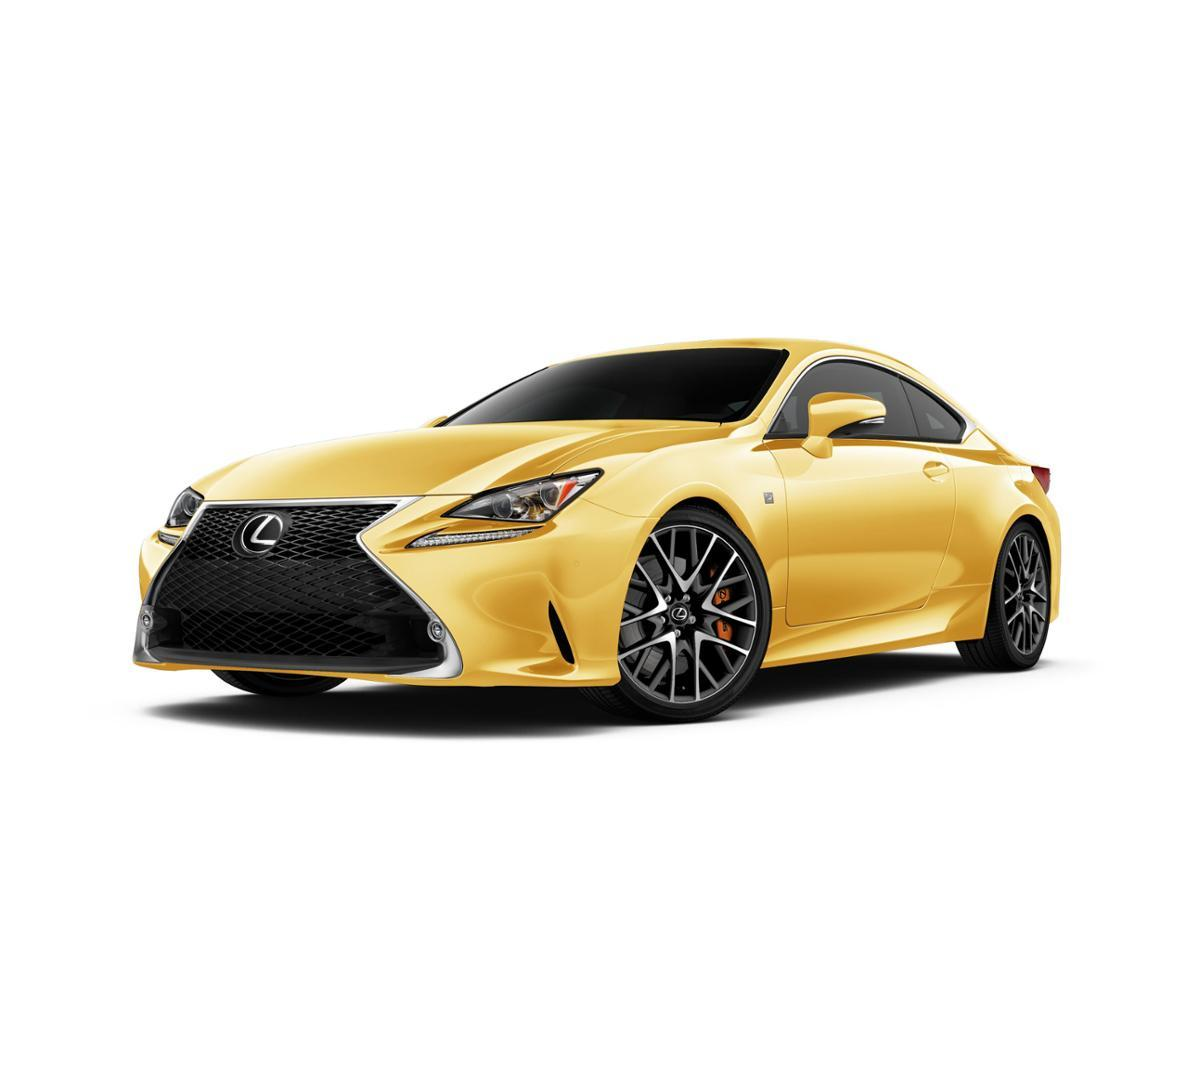 escondido flare yellow 2018 lexus rc 300 new car for sale. Black Bedroom Furniture Sets. Home Design Ideas